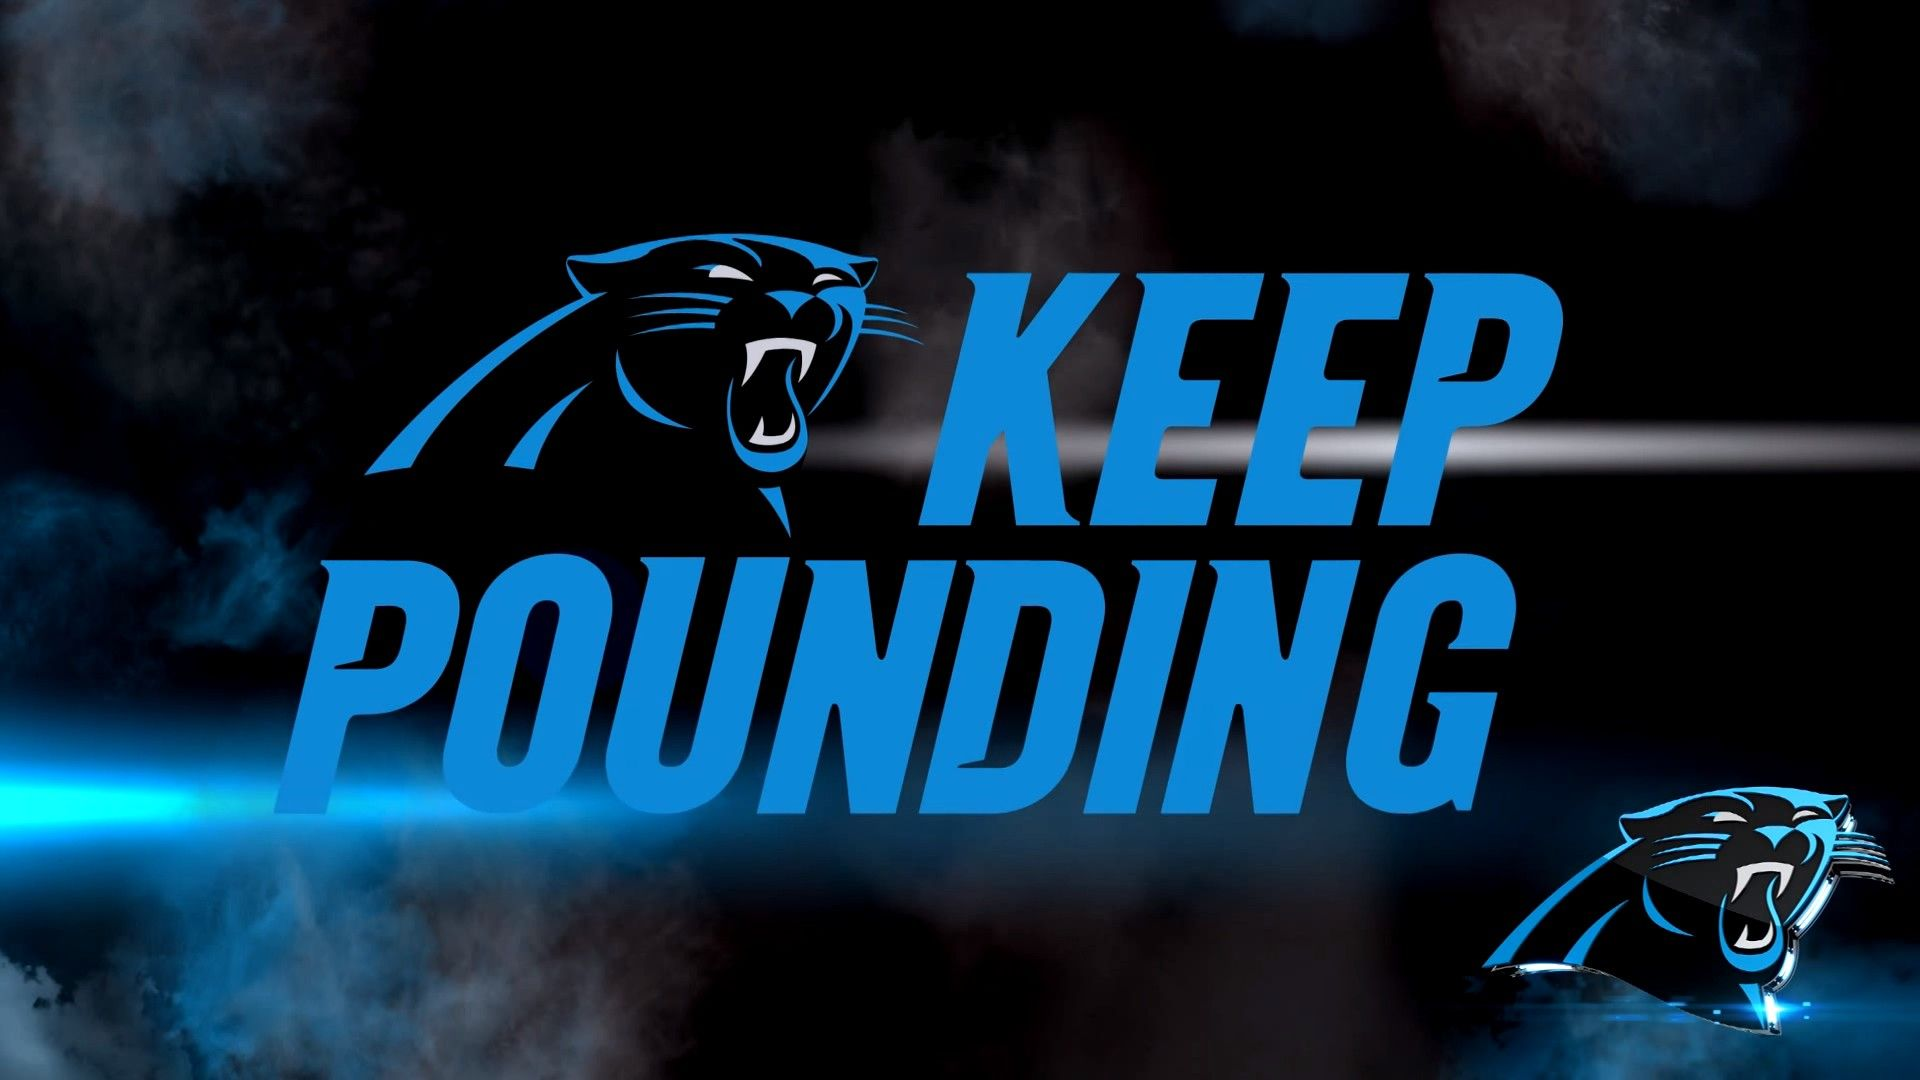 Wallpapers HD Carolina Panthers Wallpapers Carolina panthers 1920x1080